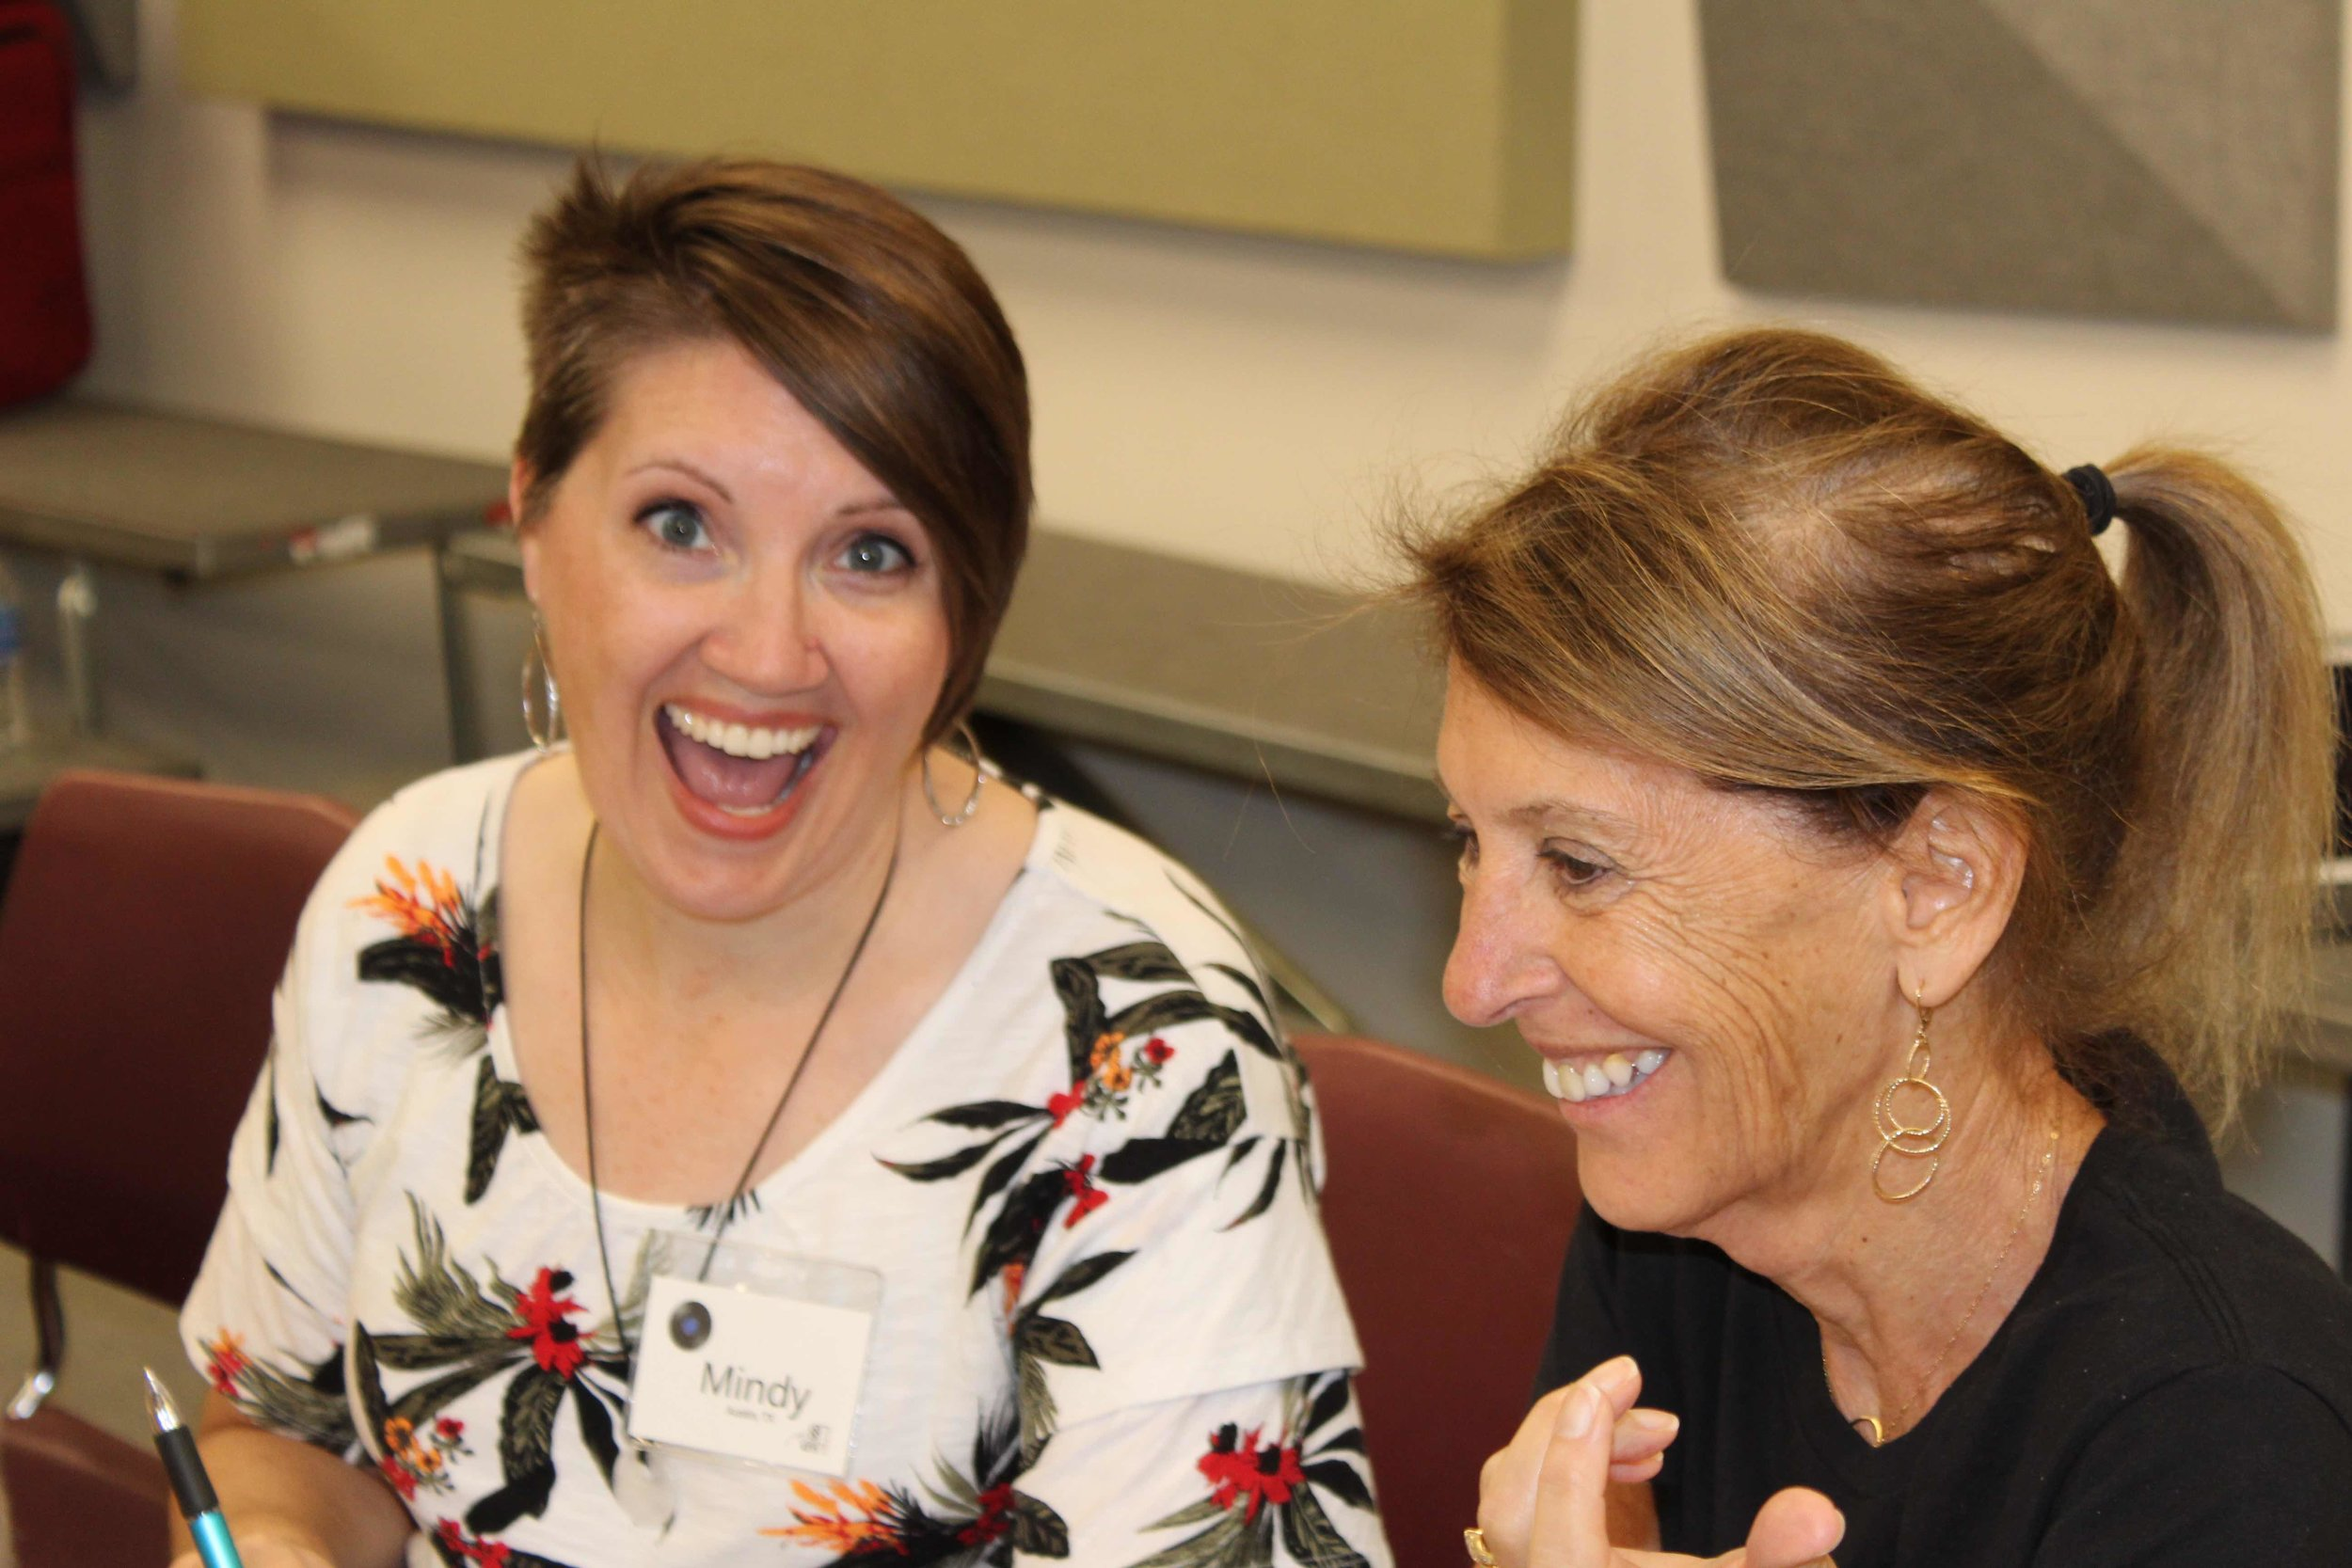 Mindy smiling for the camera sitting next to Andrea West, Ms  88PK graphics  guru